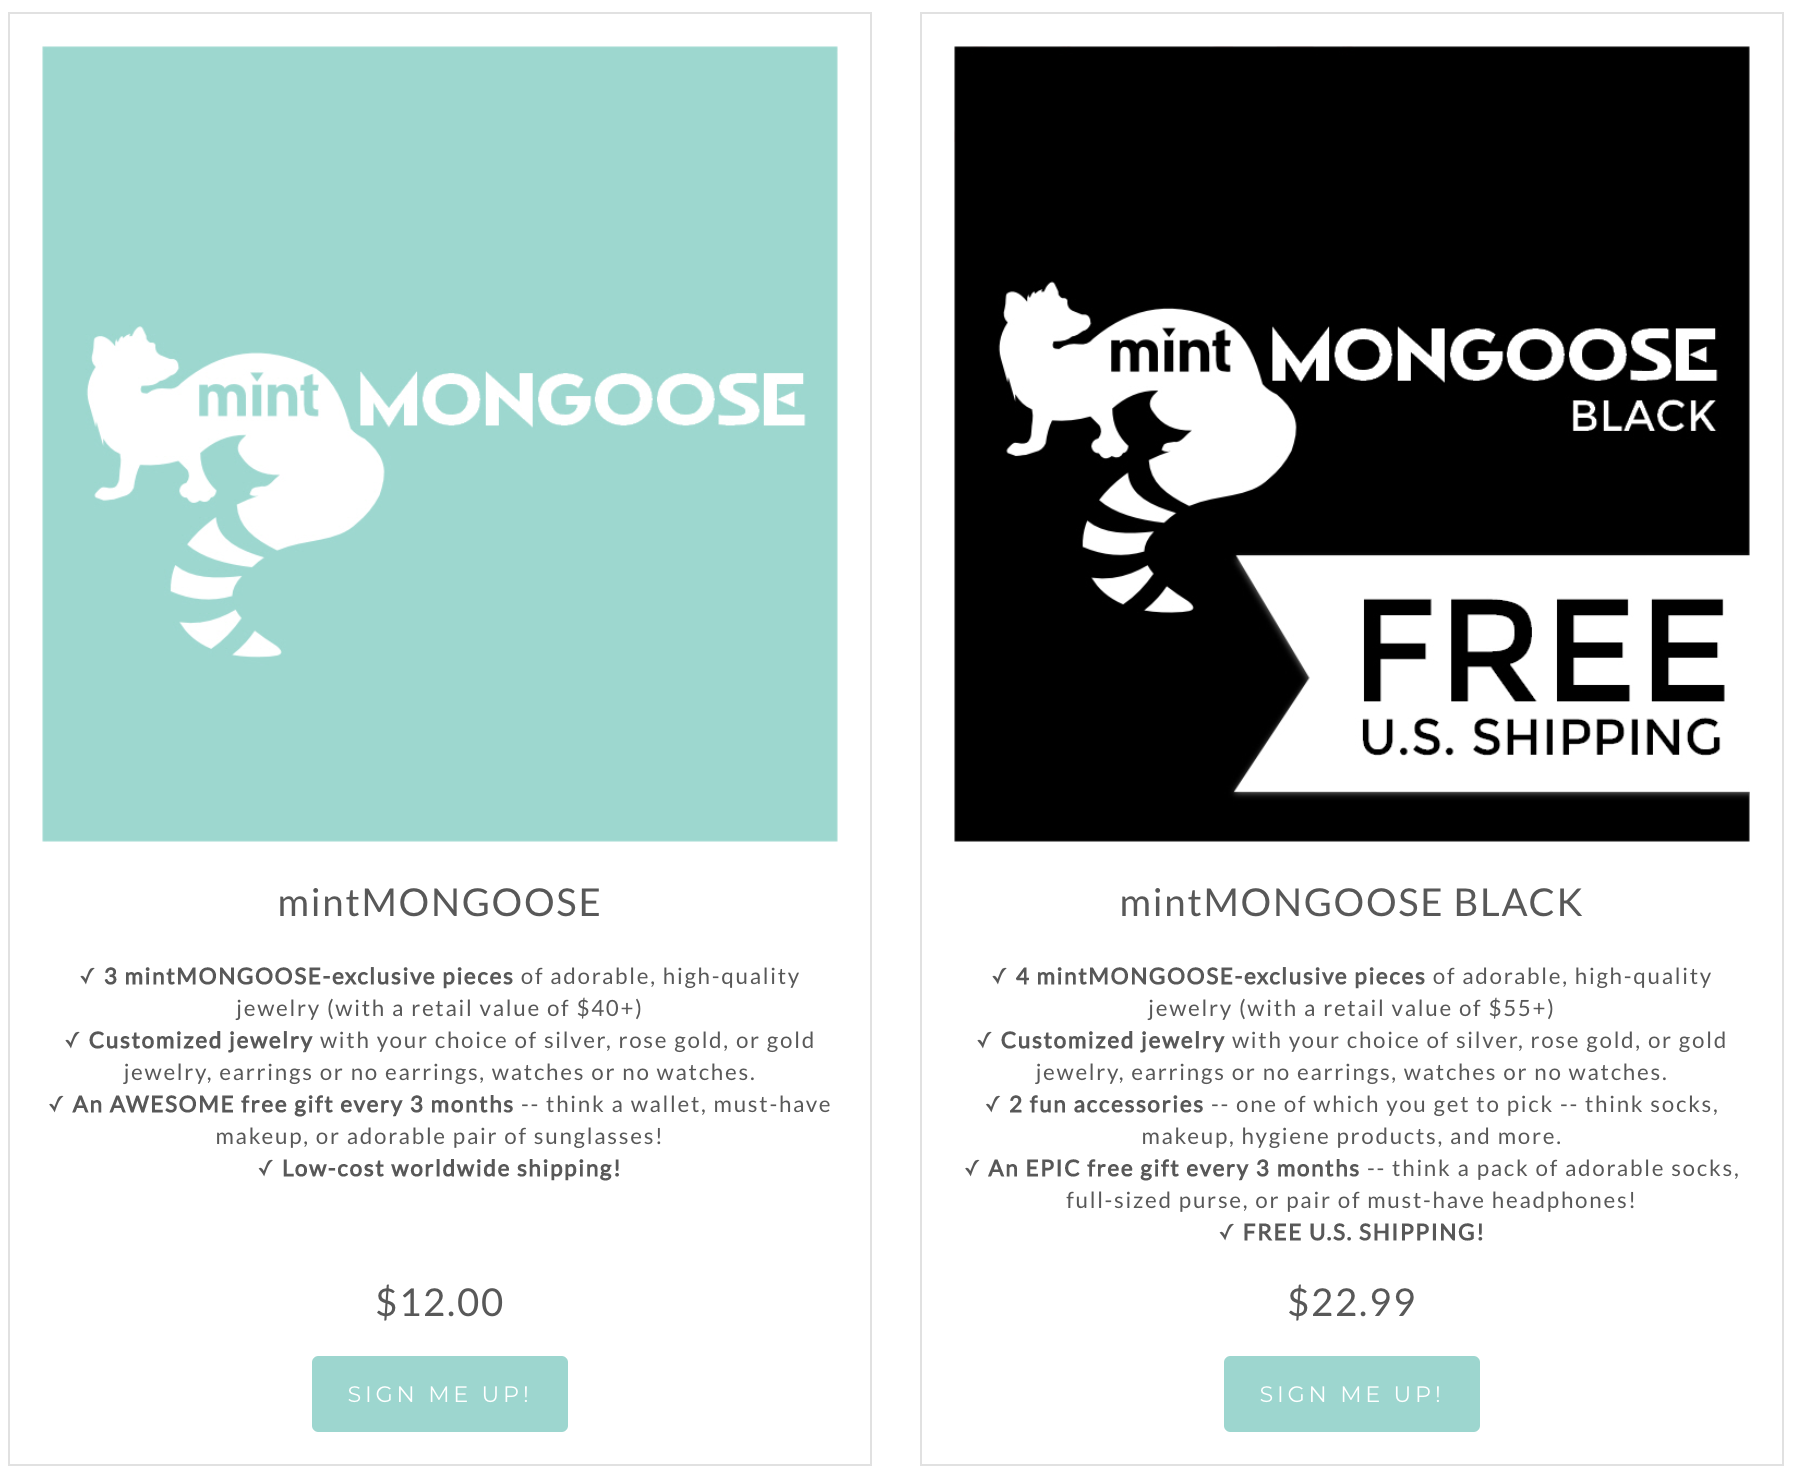 MintMONGOOSE Subscription